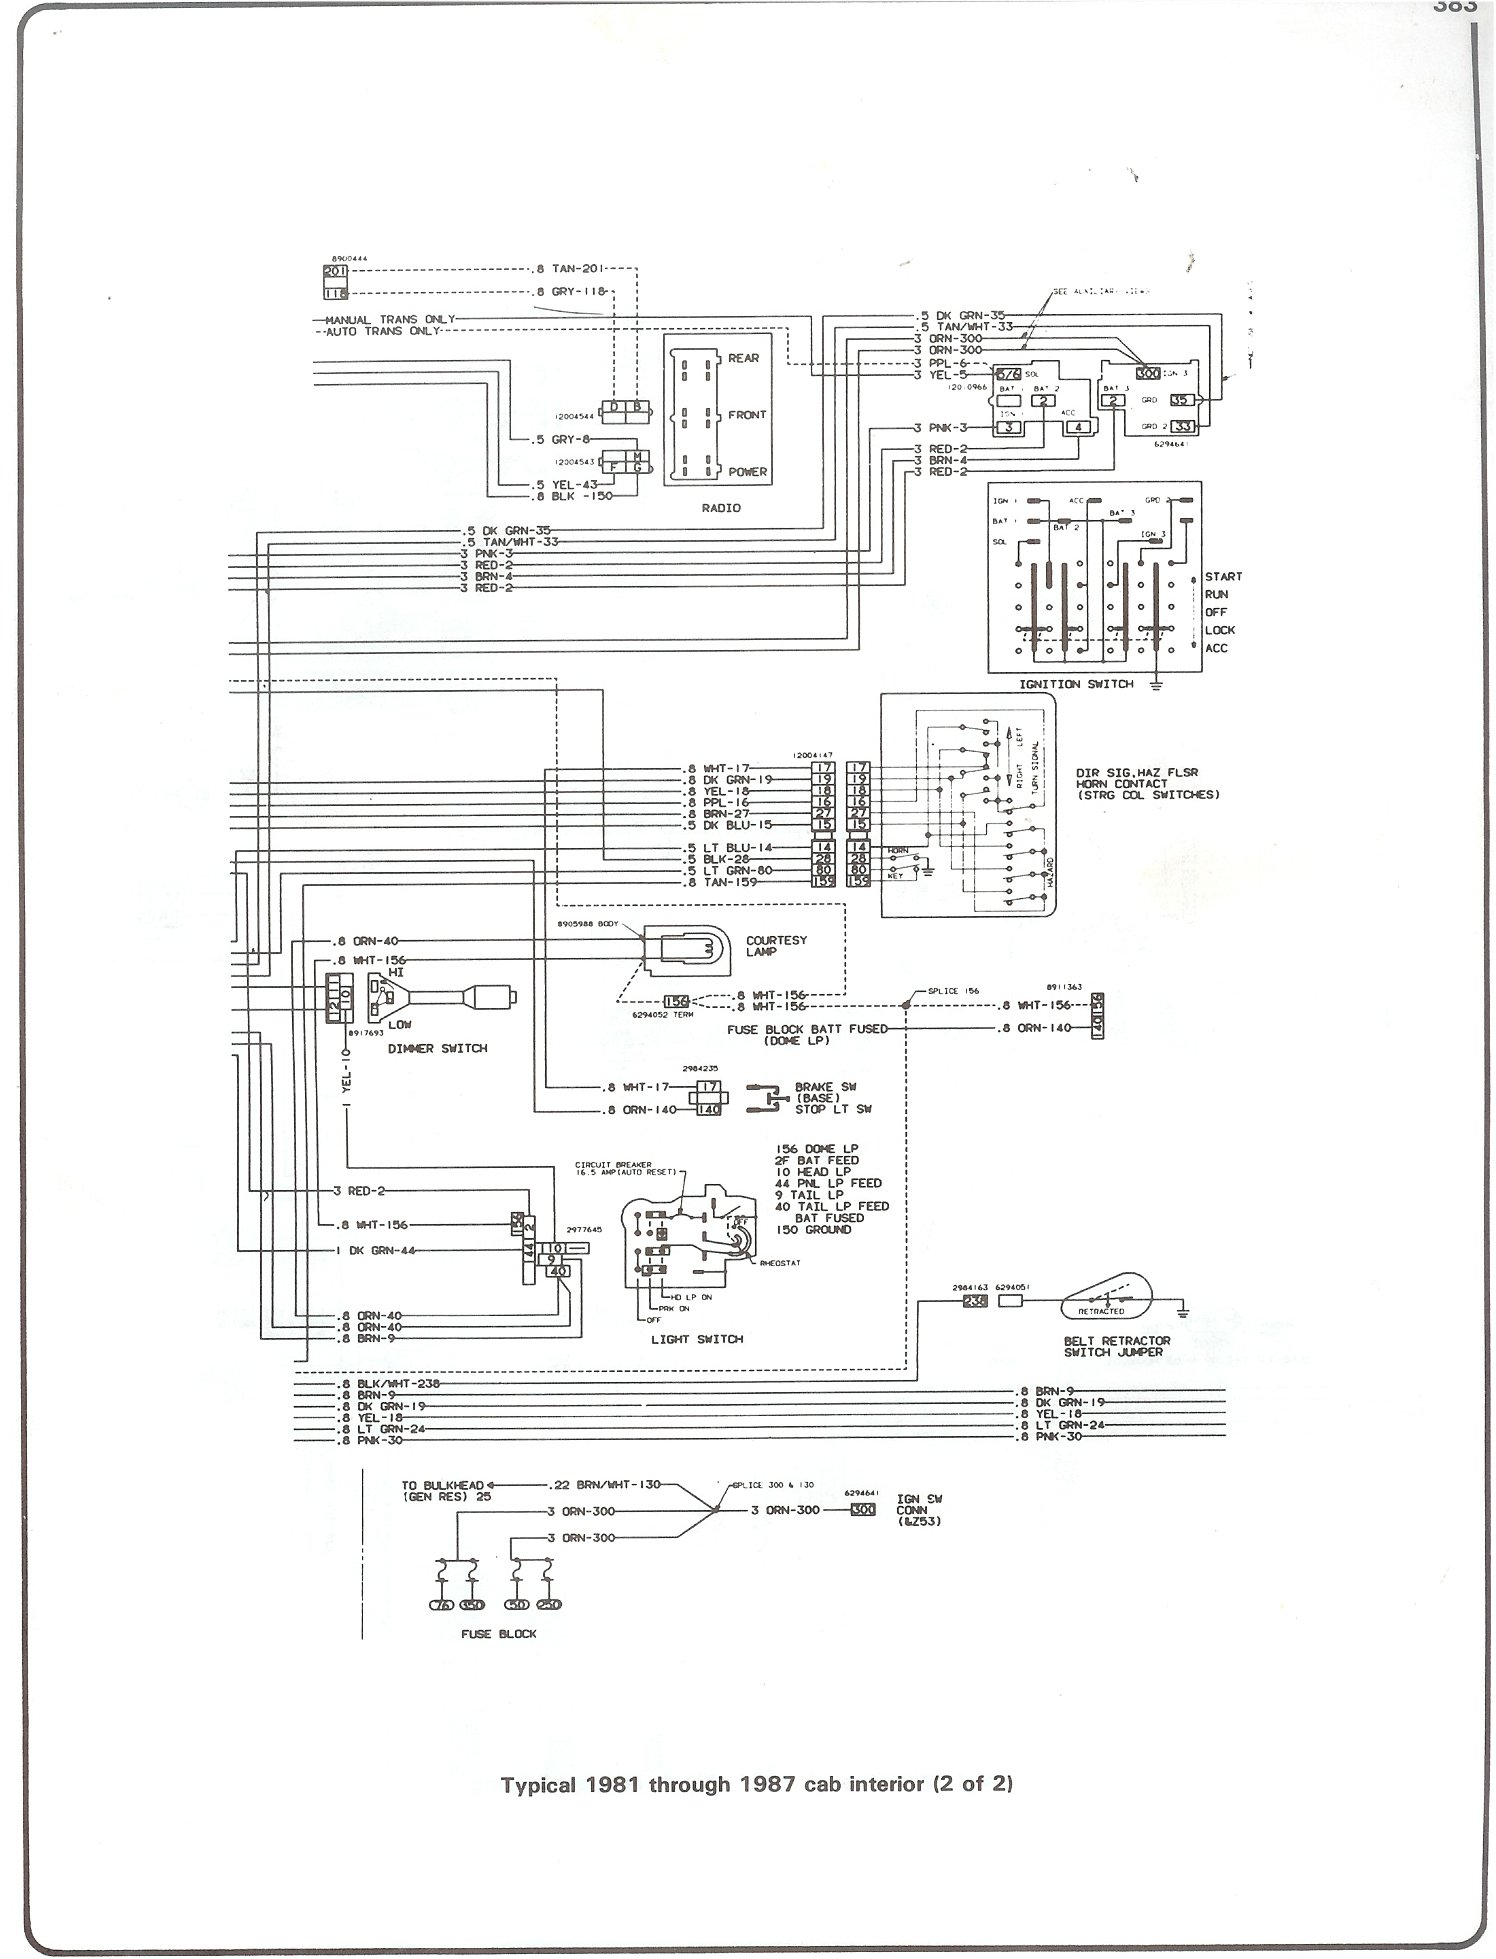 Complete 73 87 Wiring Diagrams 2003 Chevy S10 Pick Up Diagram 81 Cab Interior Page 2